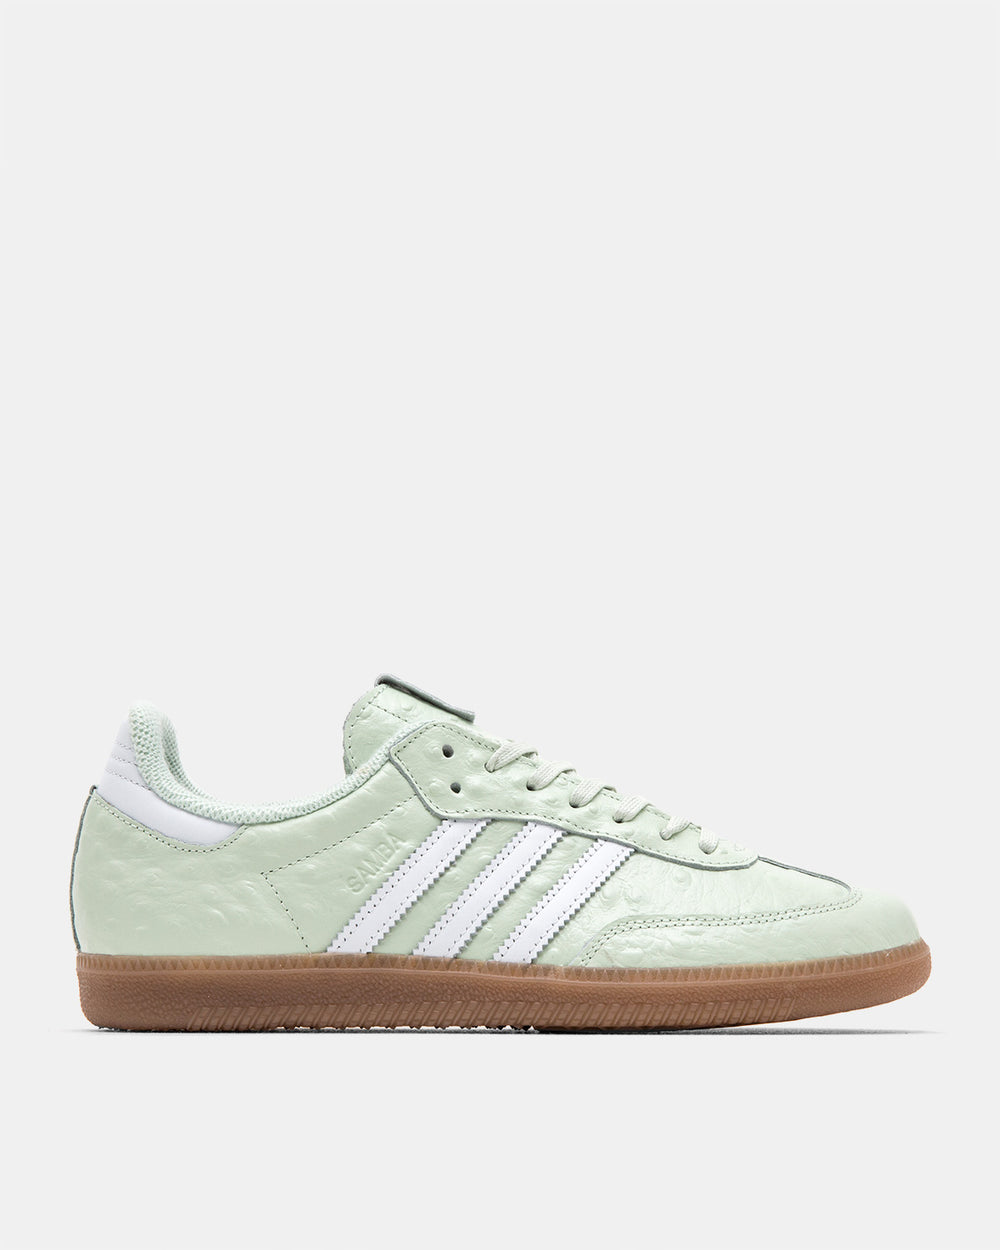 Naked x adidas Samba Womens 'Waves Pack' (Light Aqua)